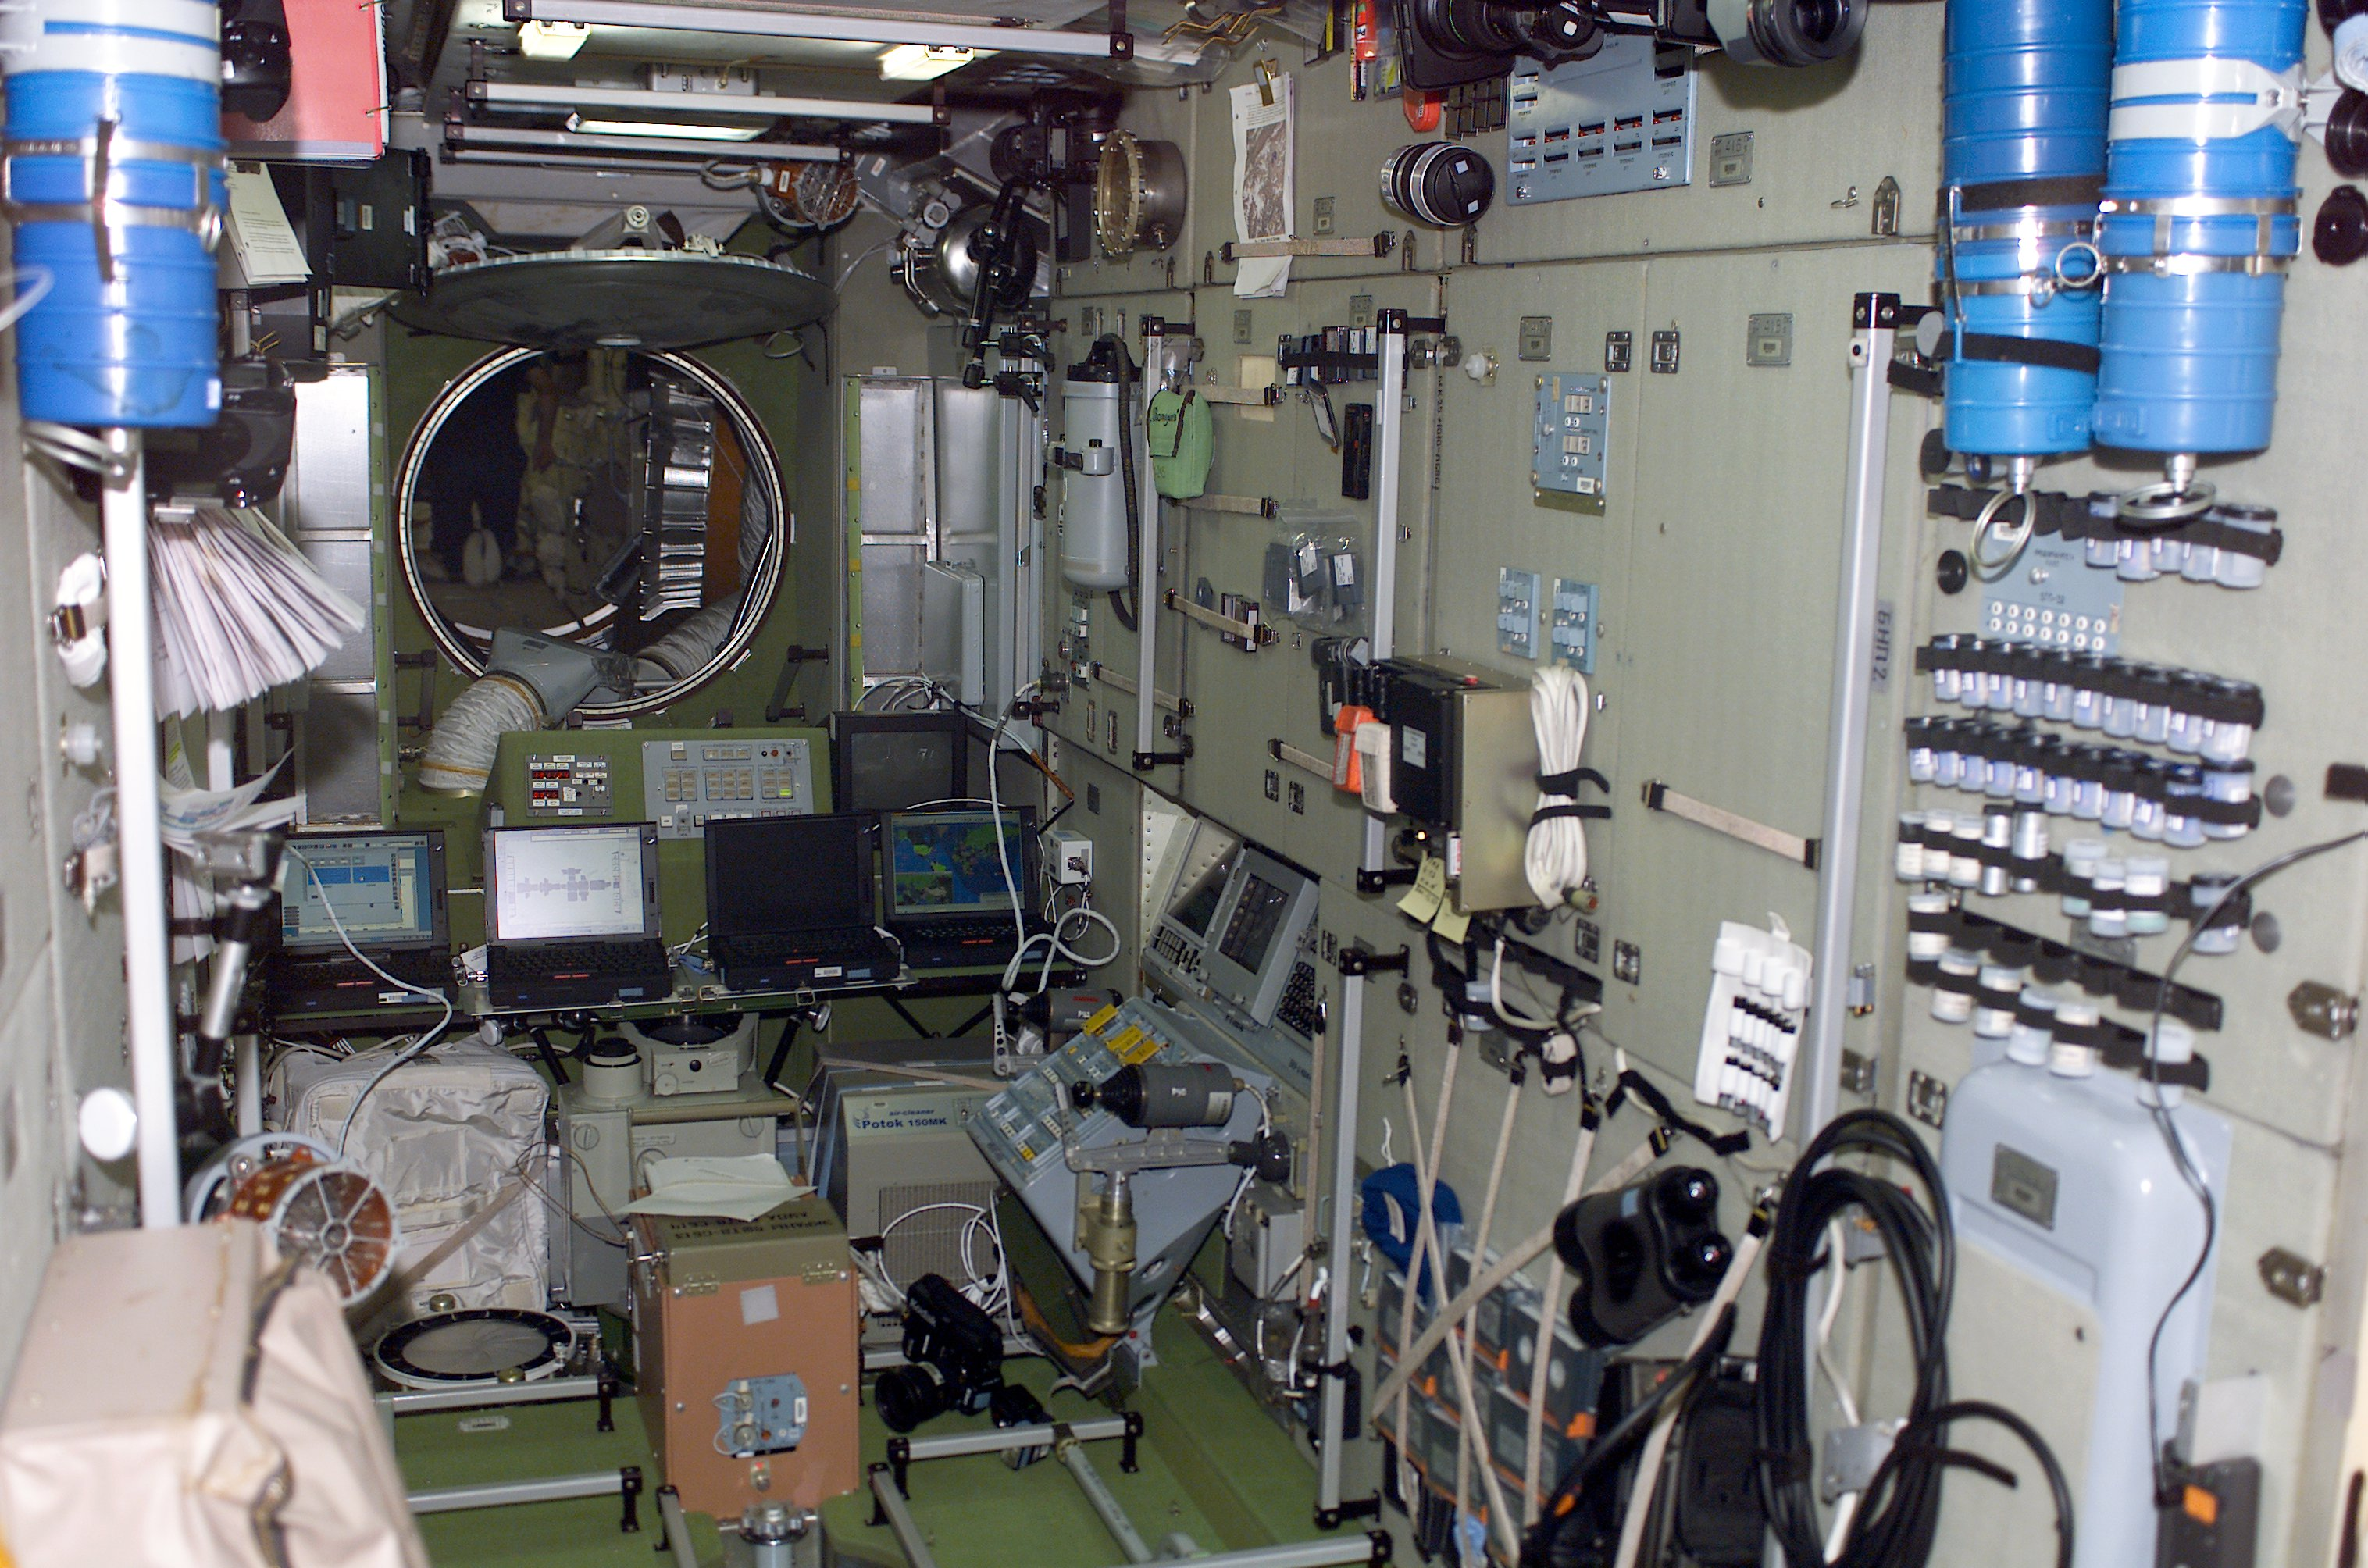 space station 5 2001 interior - photo #35